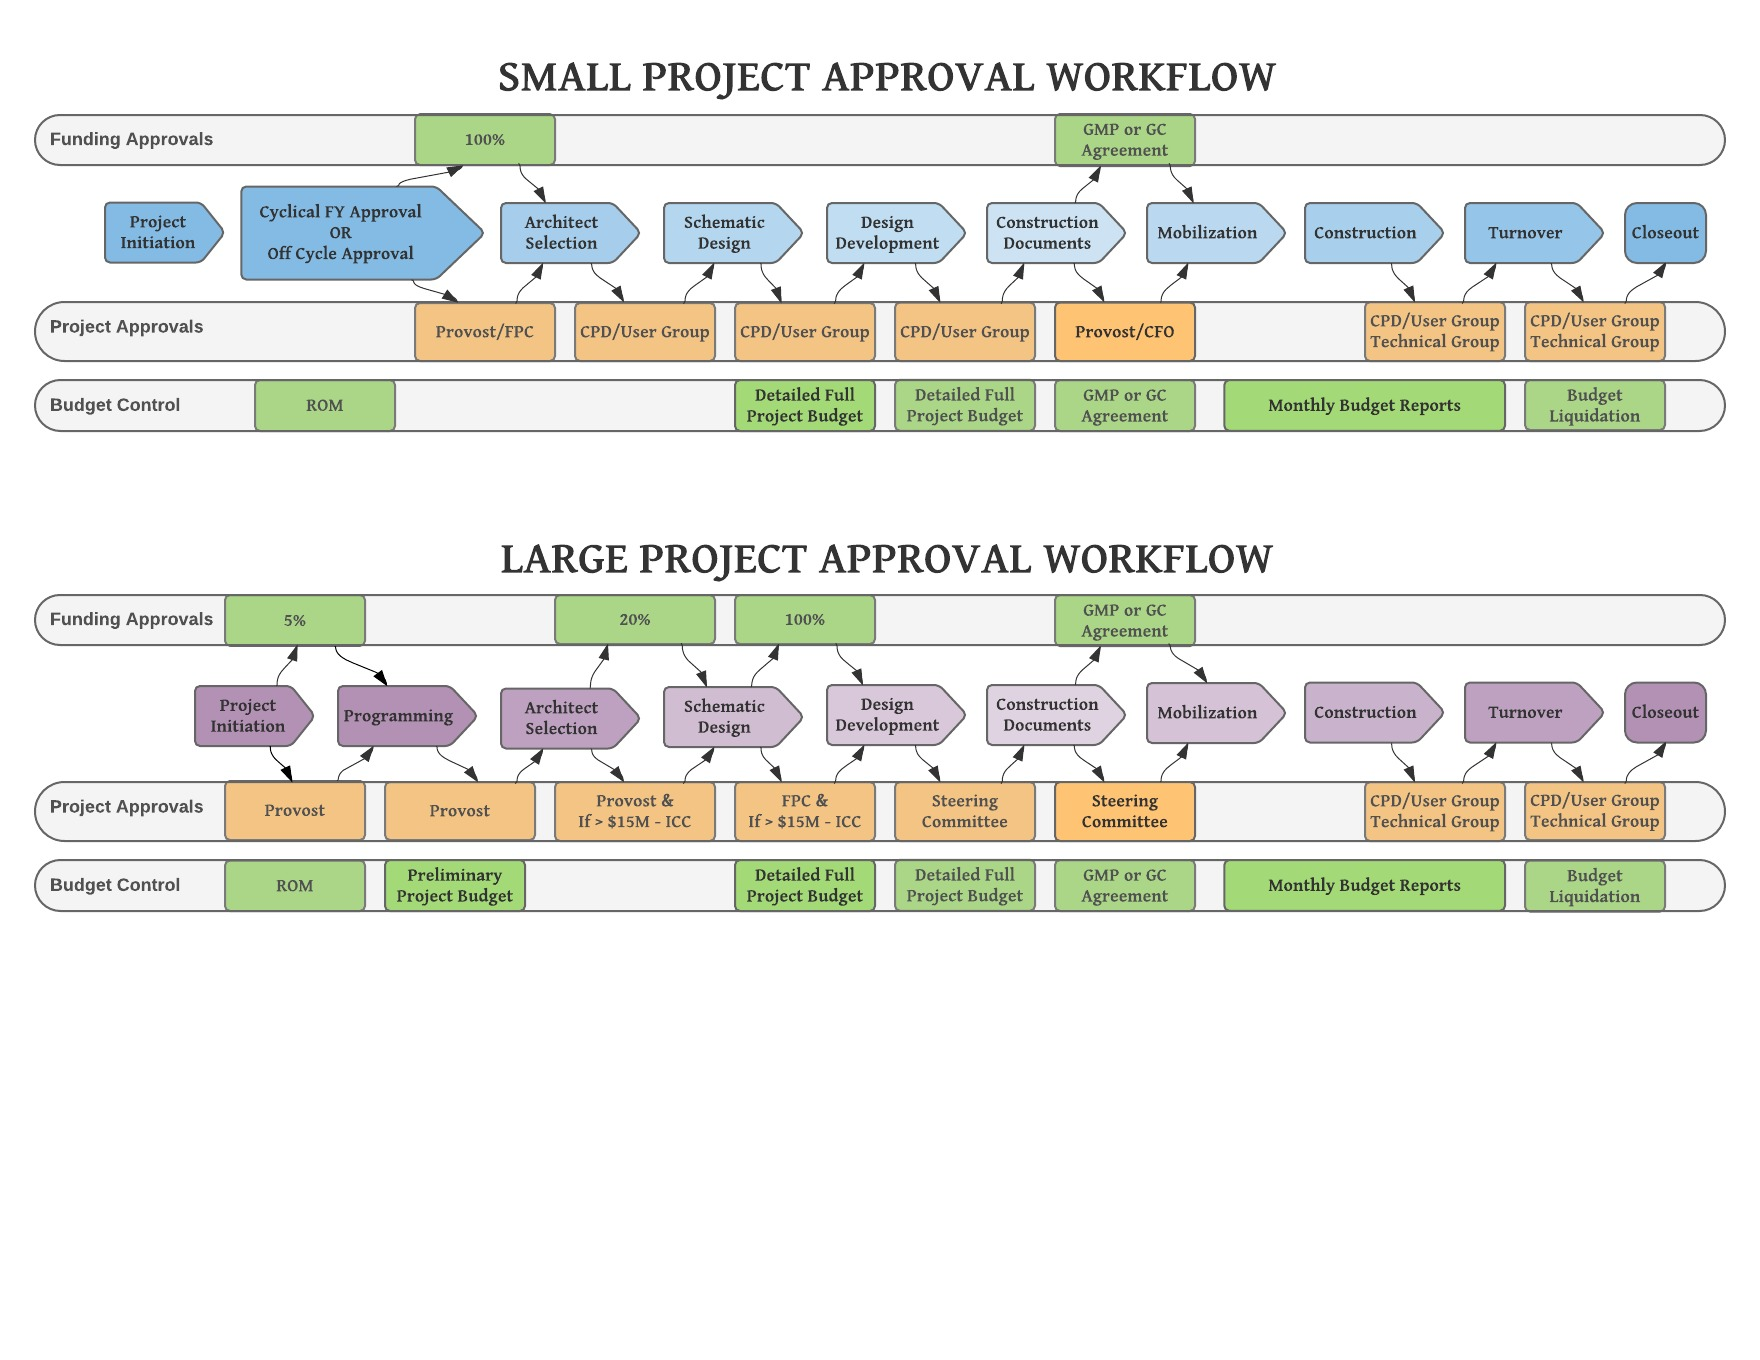 Process Phase Approval Workflow